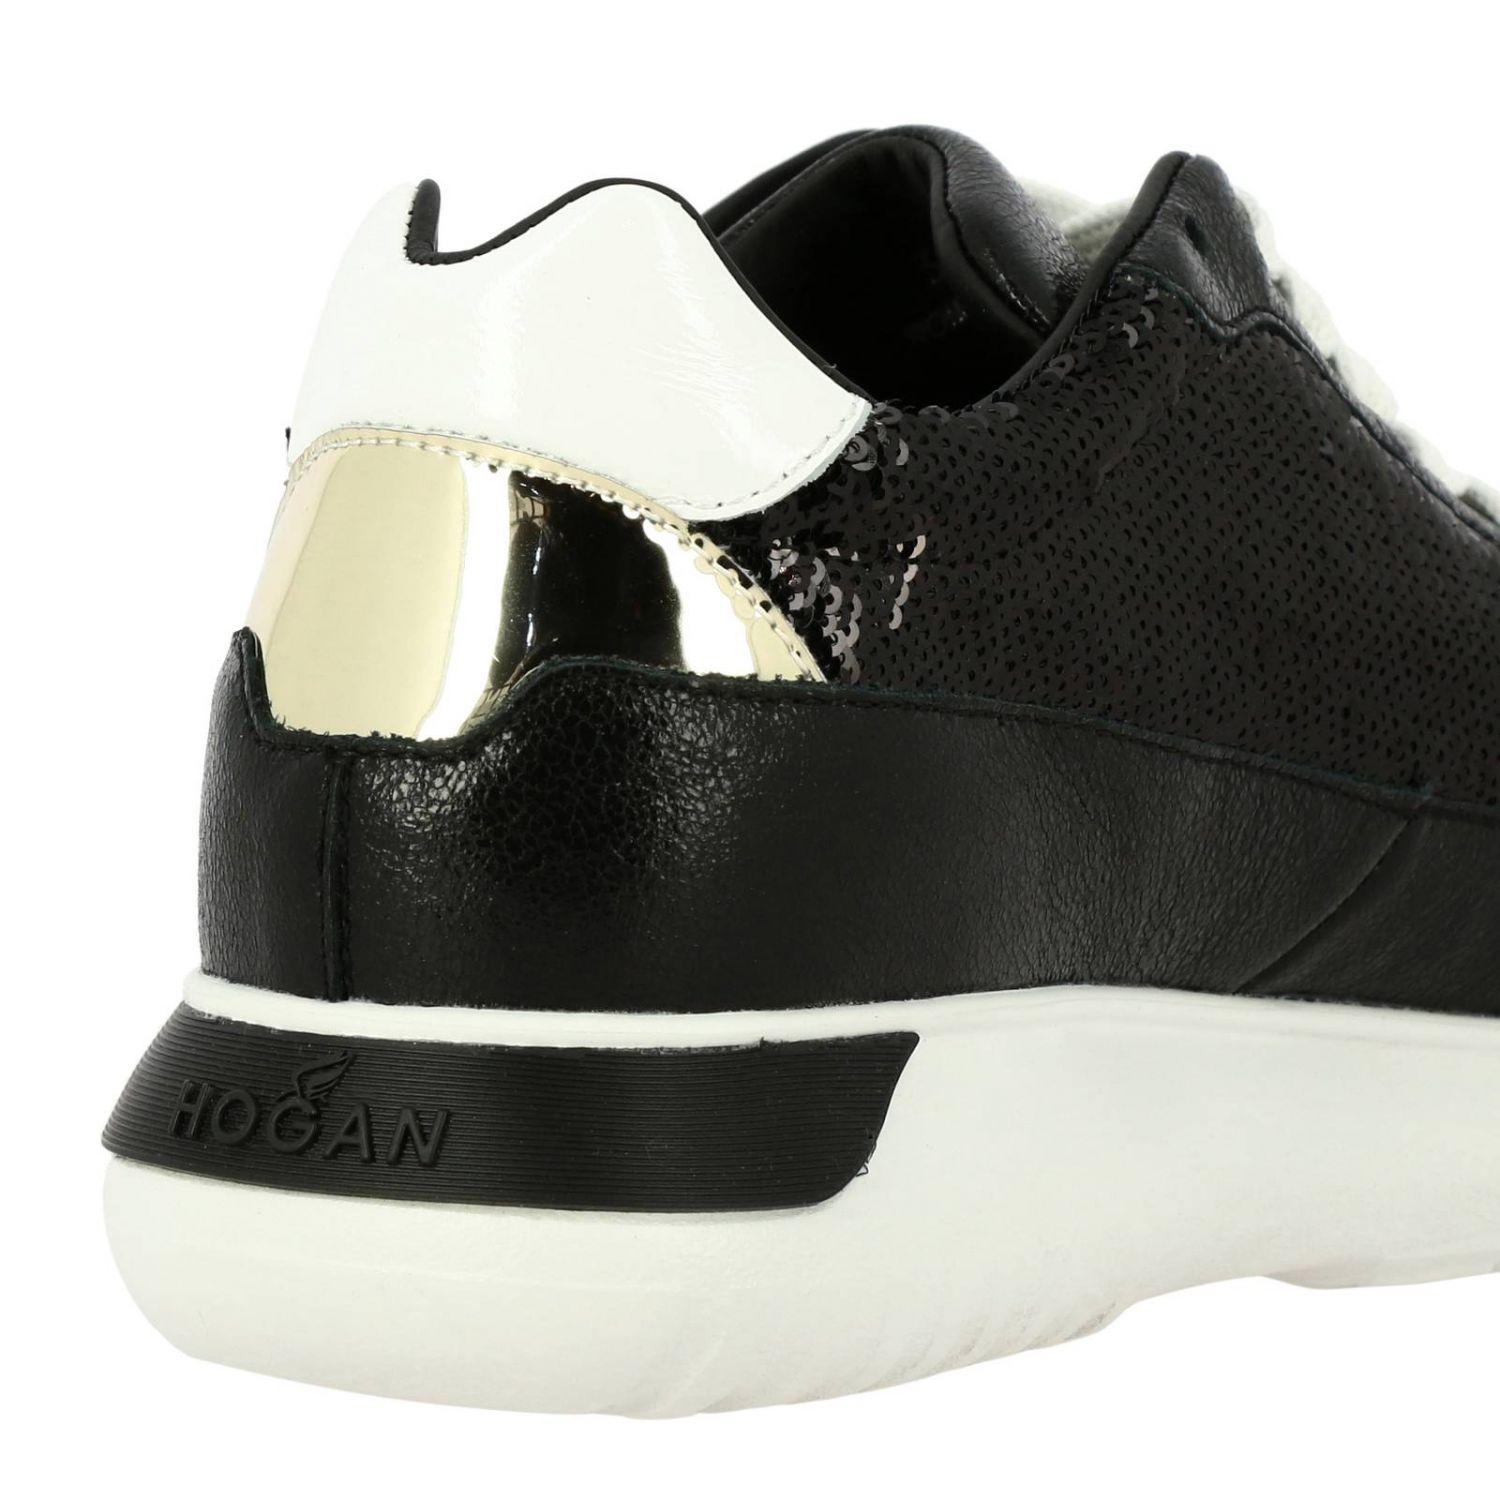 Cube Hogan leather and sequins sneakers with H and Sport sole black 4